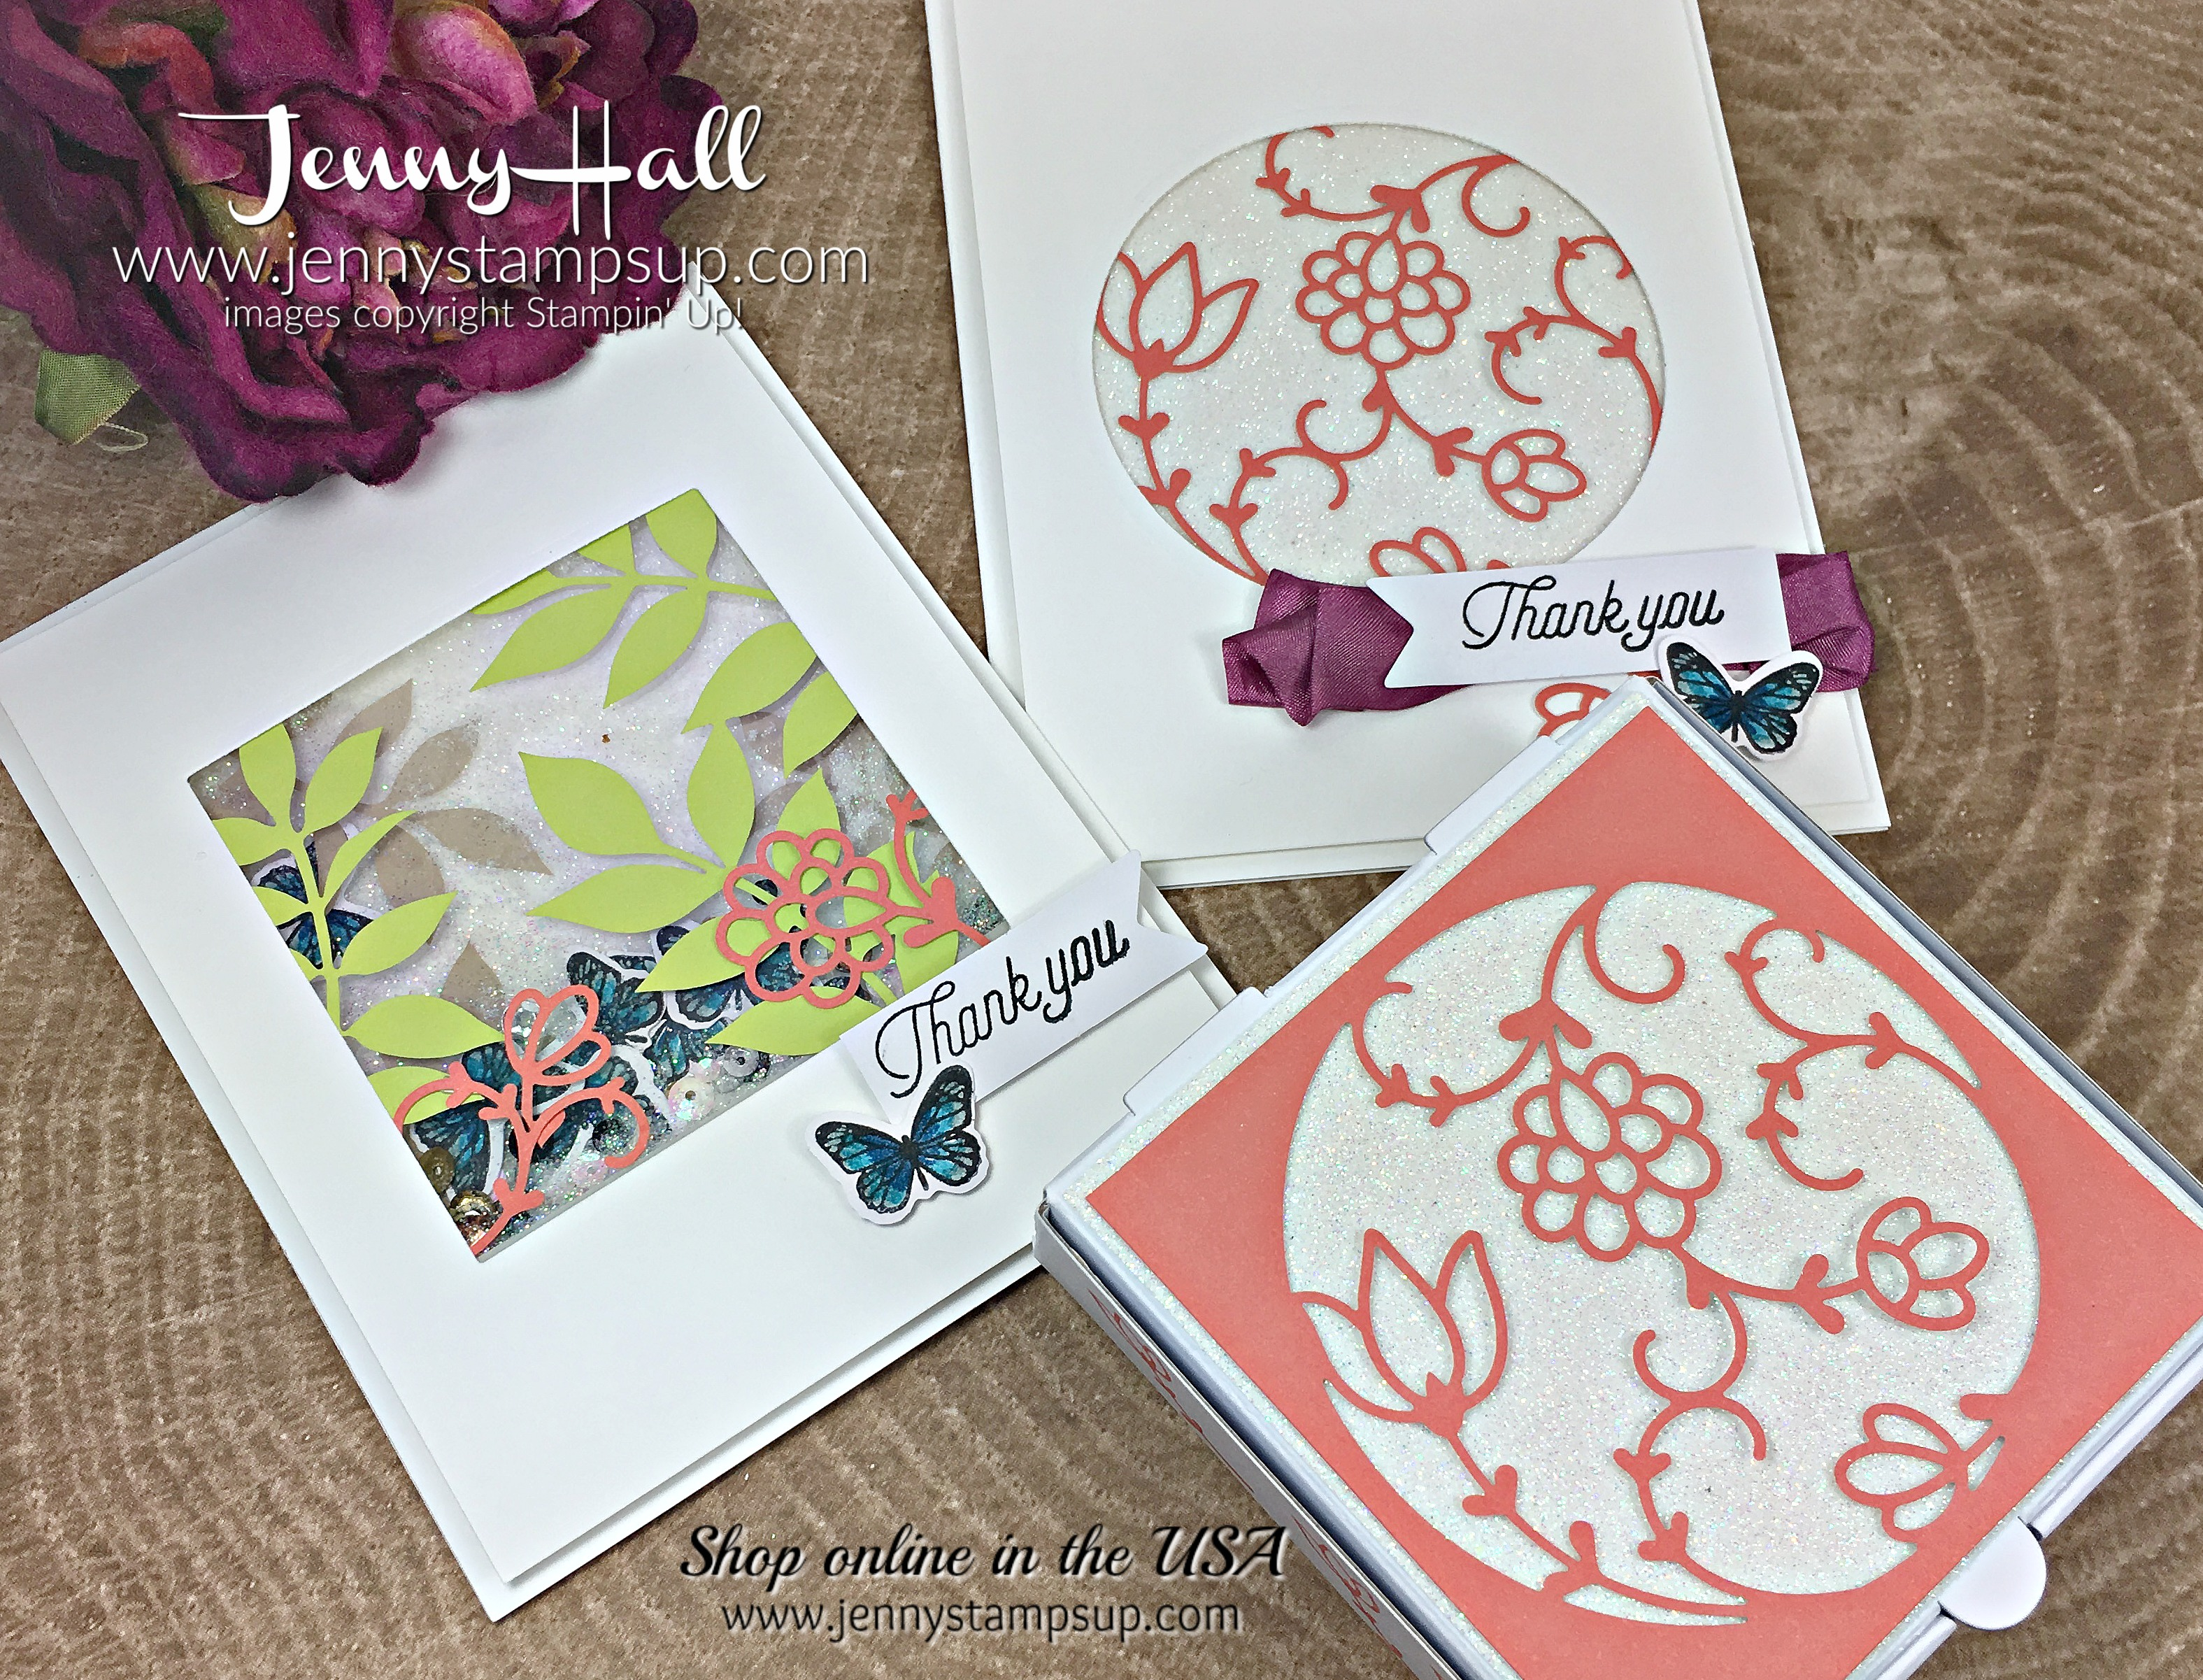 Paper Pumpkin December 2017 Kit Flora and Flutter Kit cards by Jenny Hall at www.jennyhalldesign.com for #cardmaking #stampinup #paperpumpkin #apaperpumpkinthing #paperpumpkinbloghop #glimmerpaper #cardmakingkit #jennystampsup #jennyhallstampinup #jennystampsup #videotutorials #scrapbooking and more!